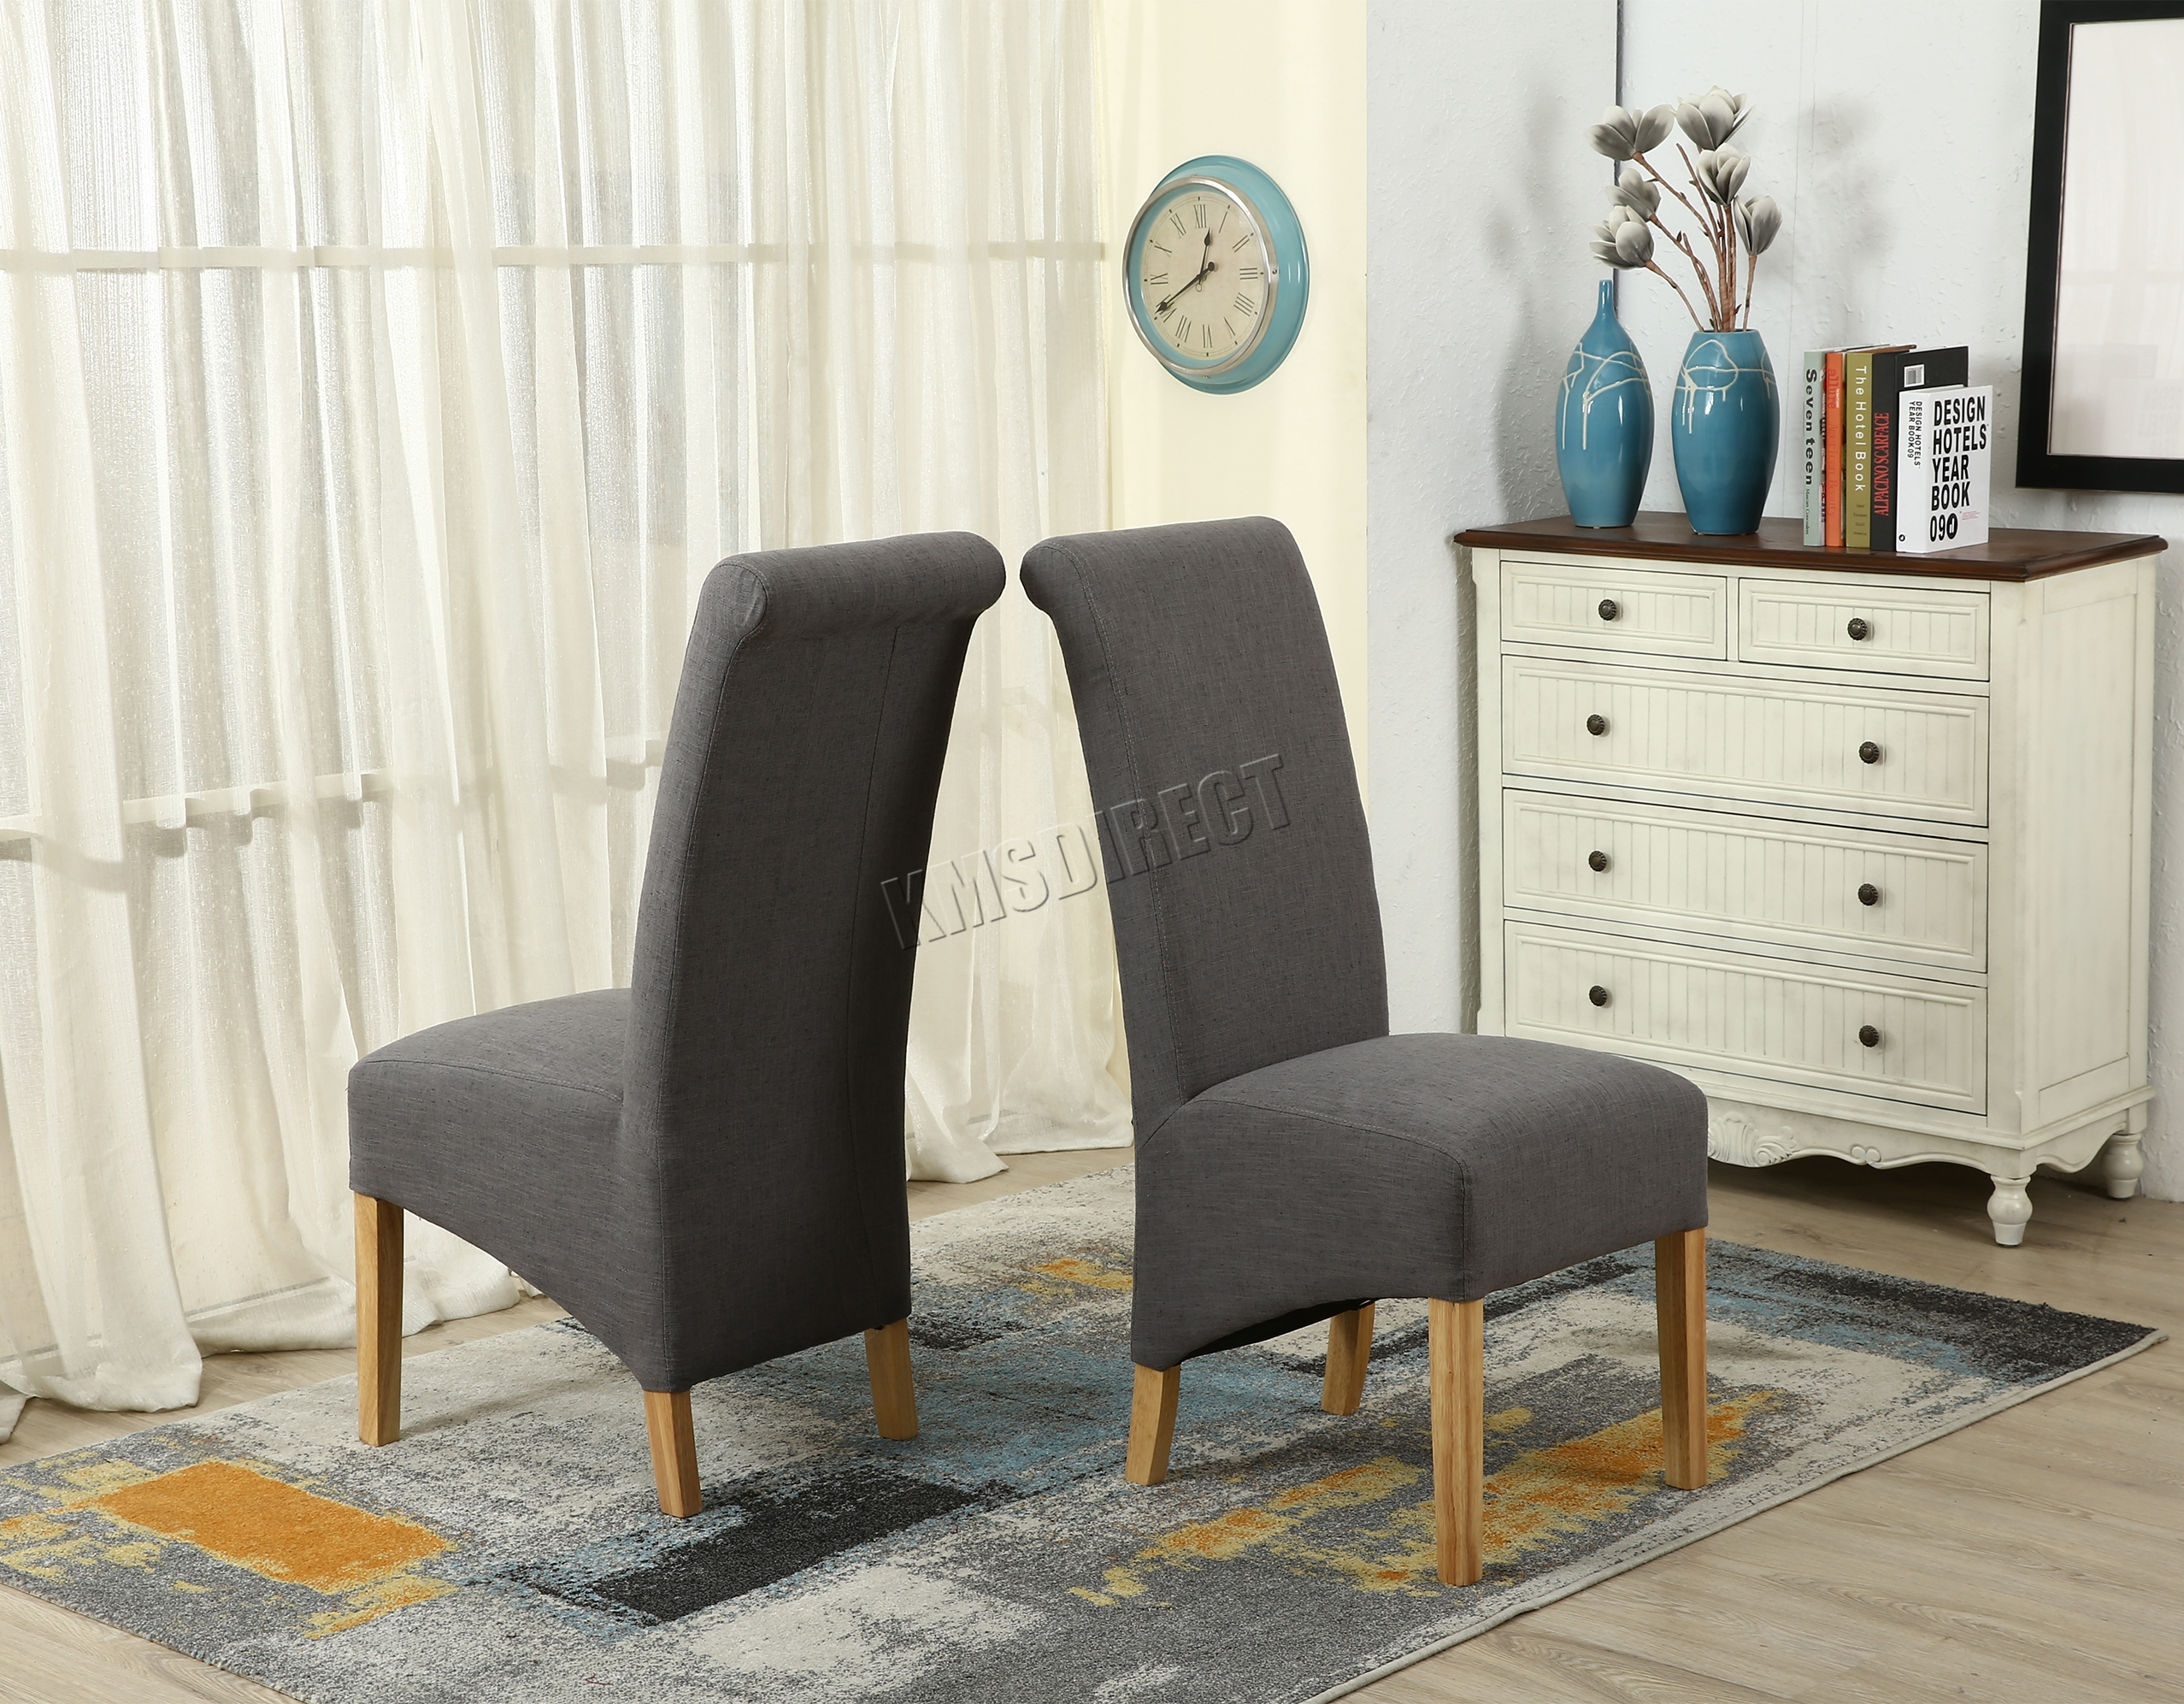 foxhunter kms grey linen fabric dining chairs scroll high back